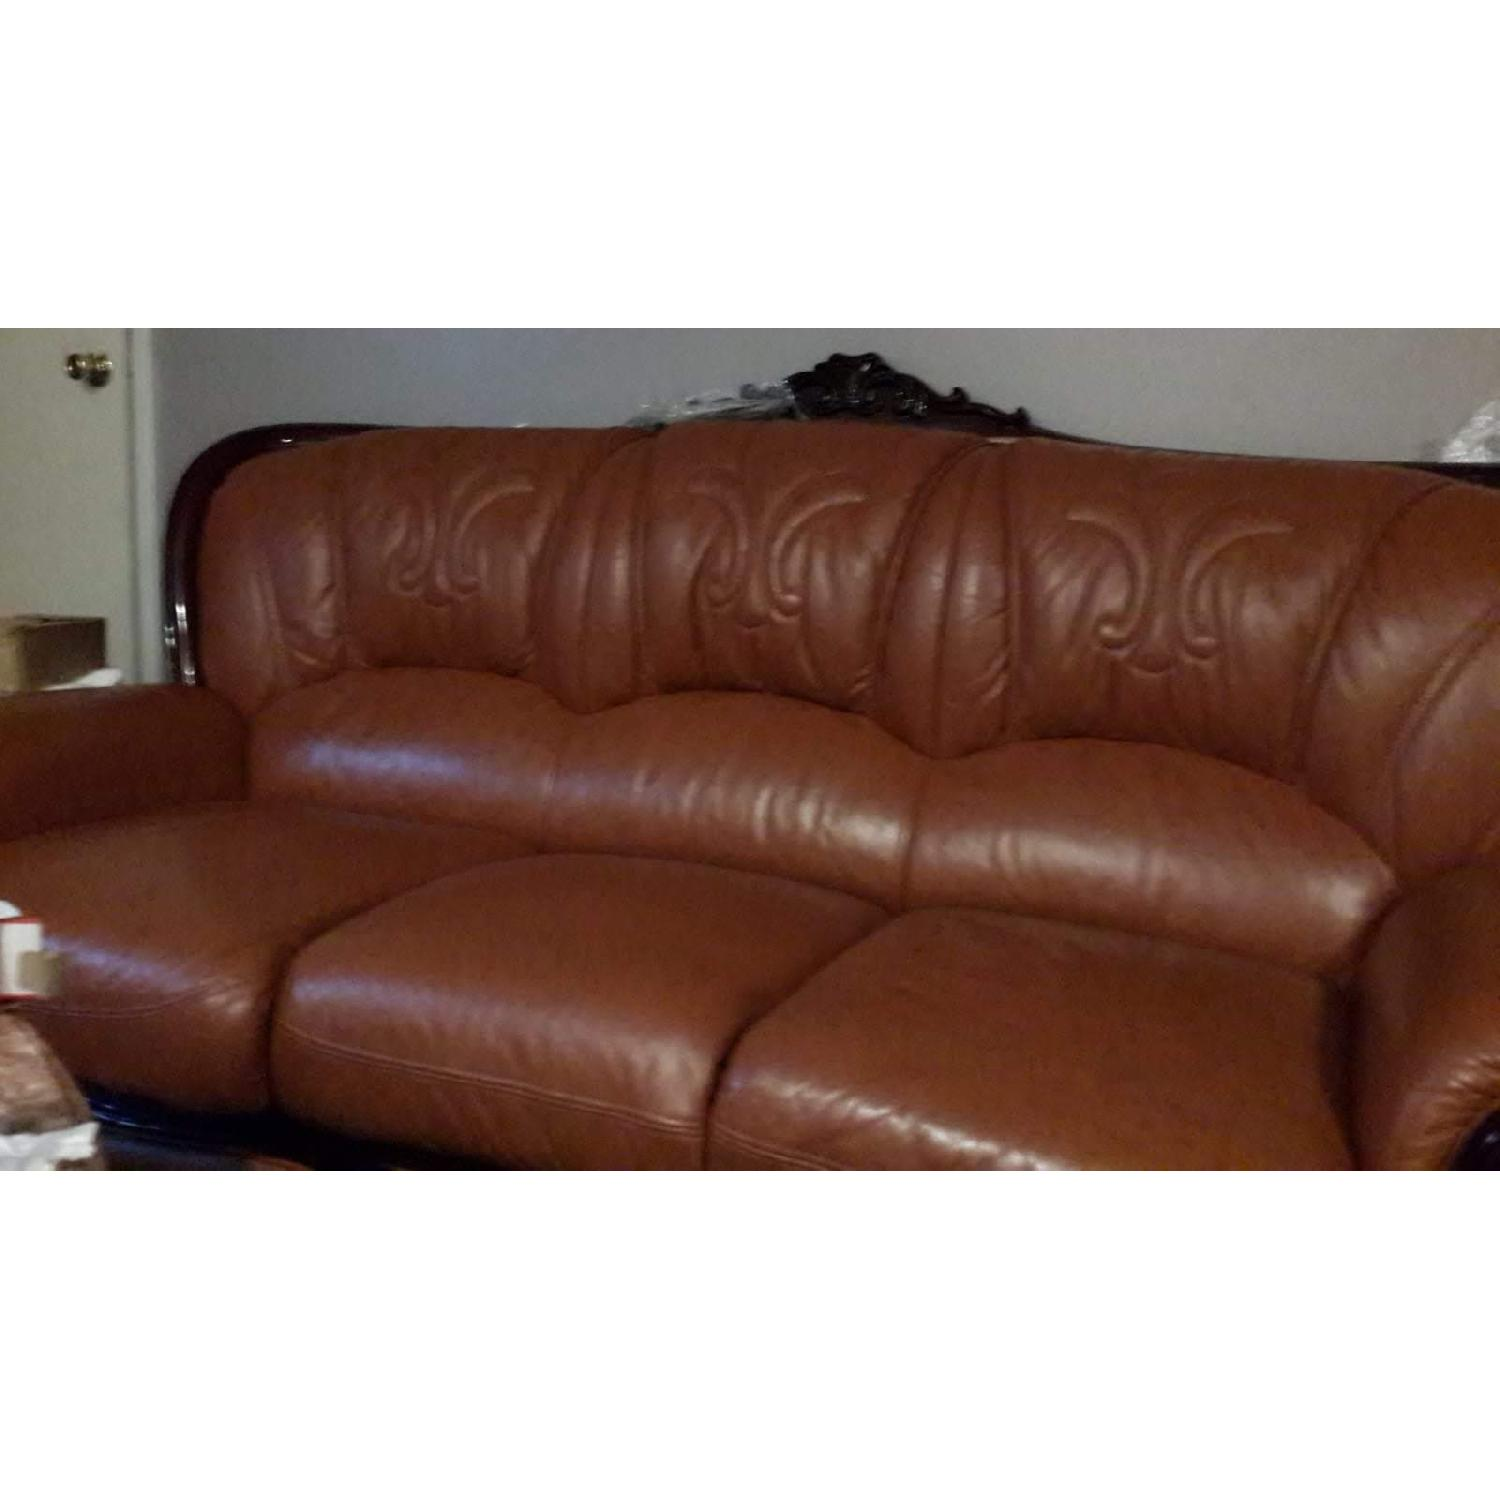 Leather Upholstered 3 Seater Sofa - image-1